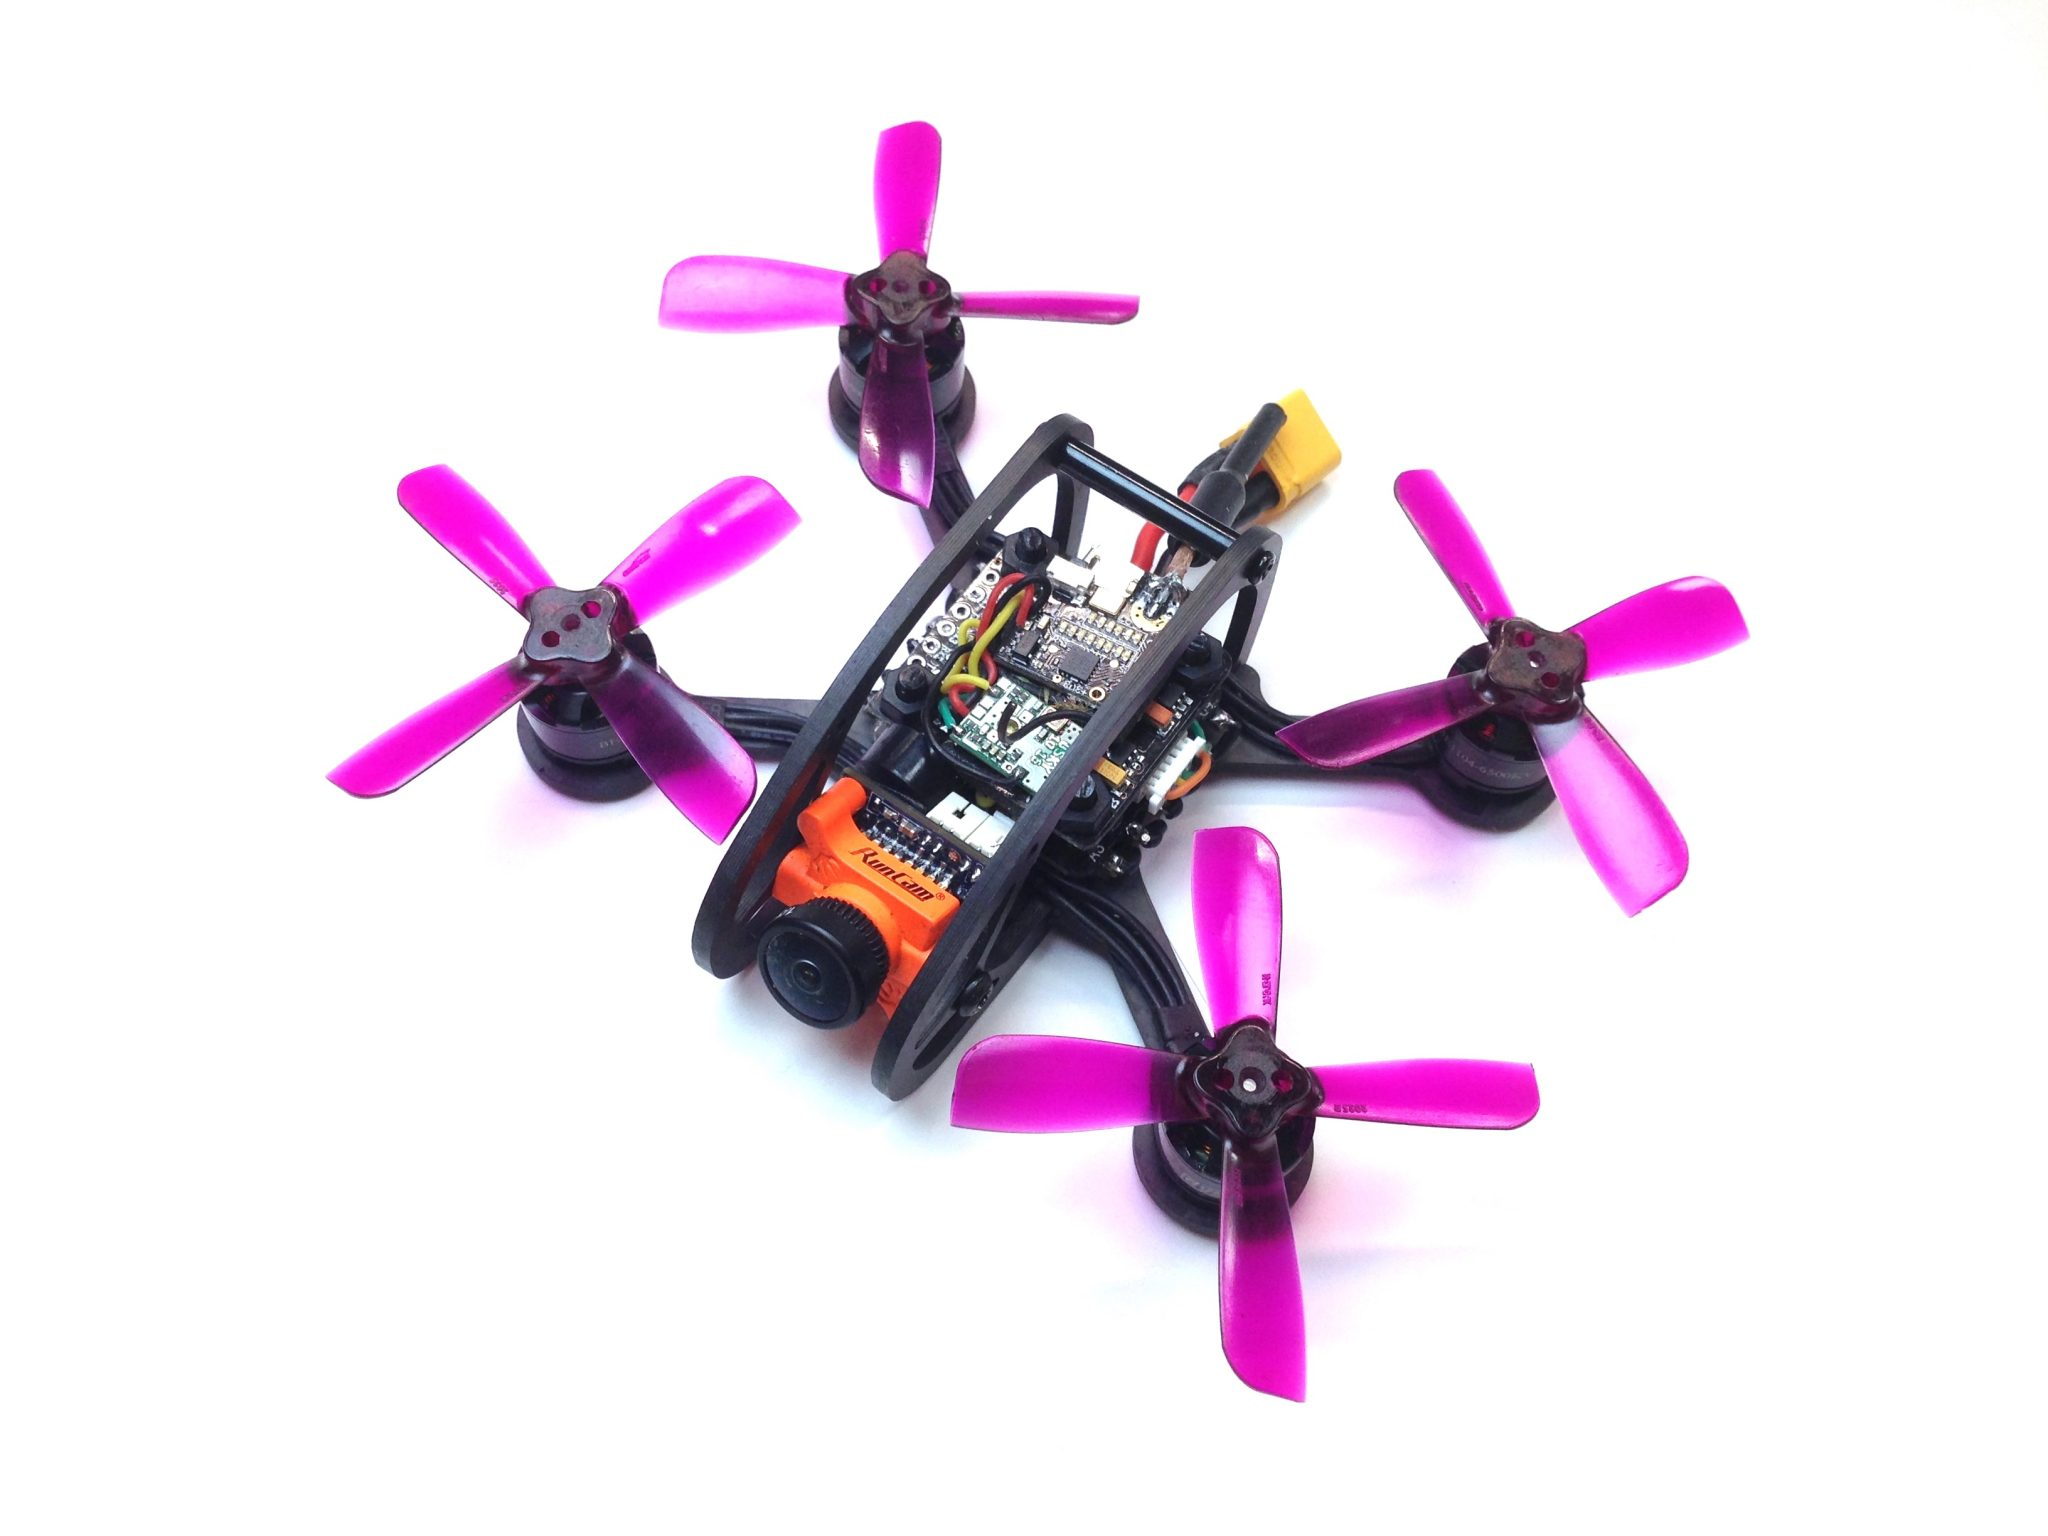 Ascent Extreme Bundle Micro Fpv Racing Drone Flex Rc